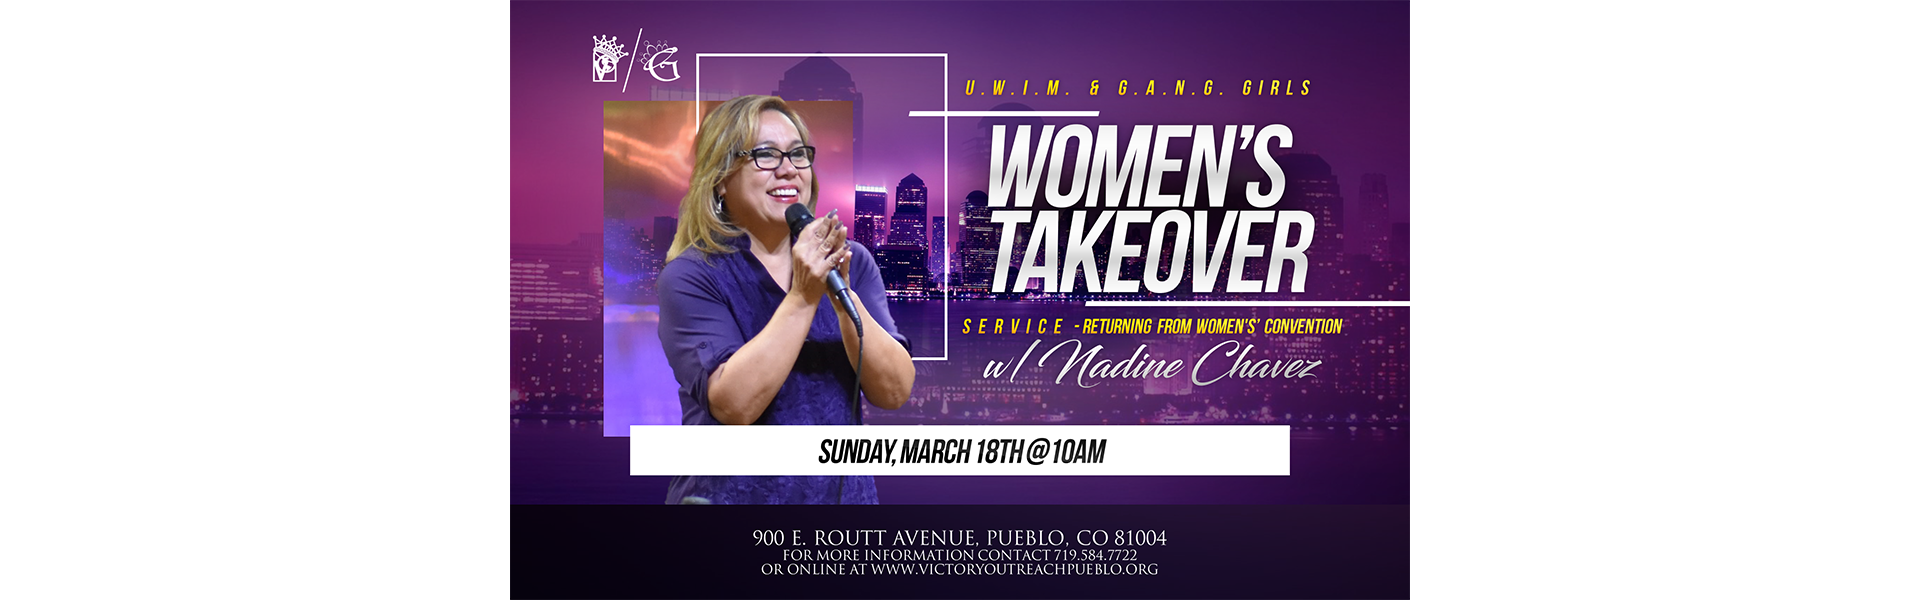 Women's Takeover 3/18